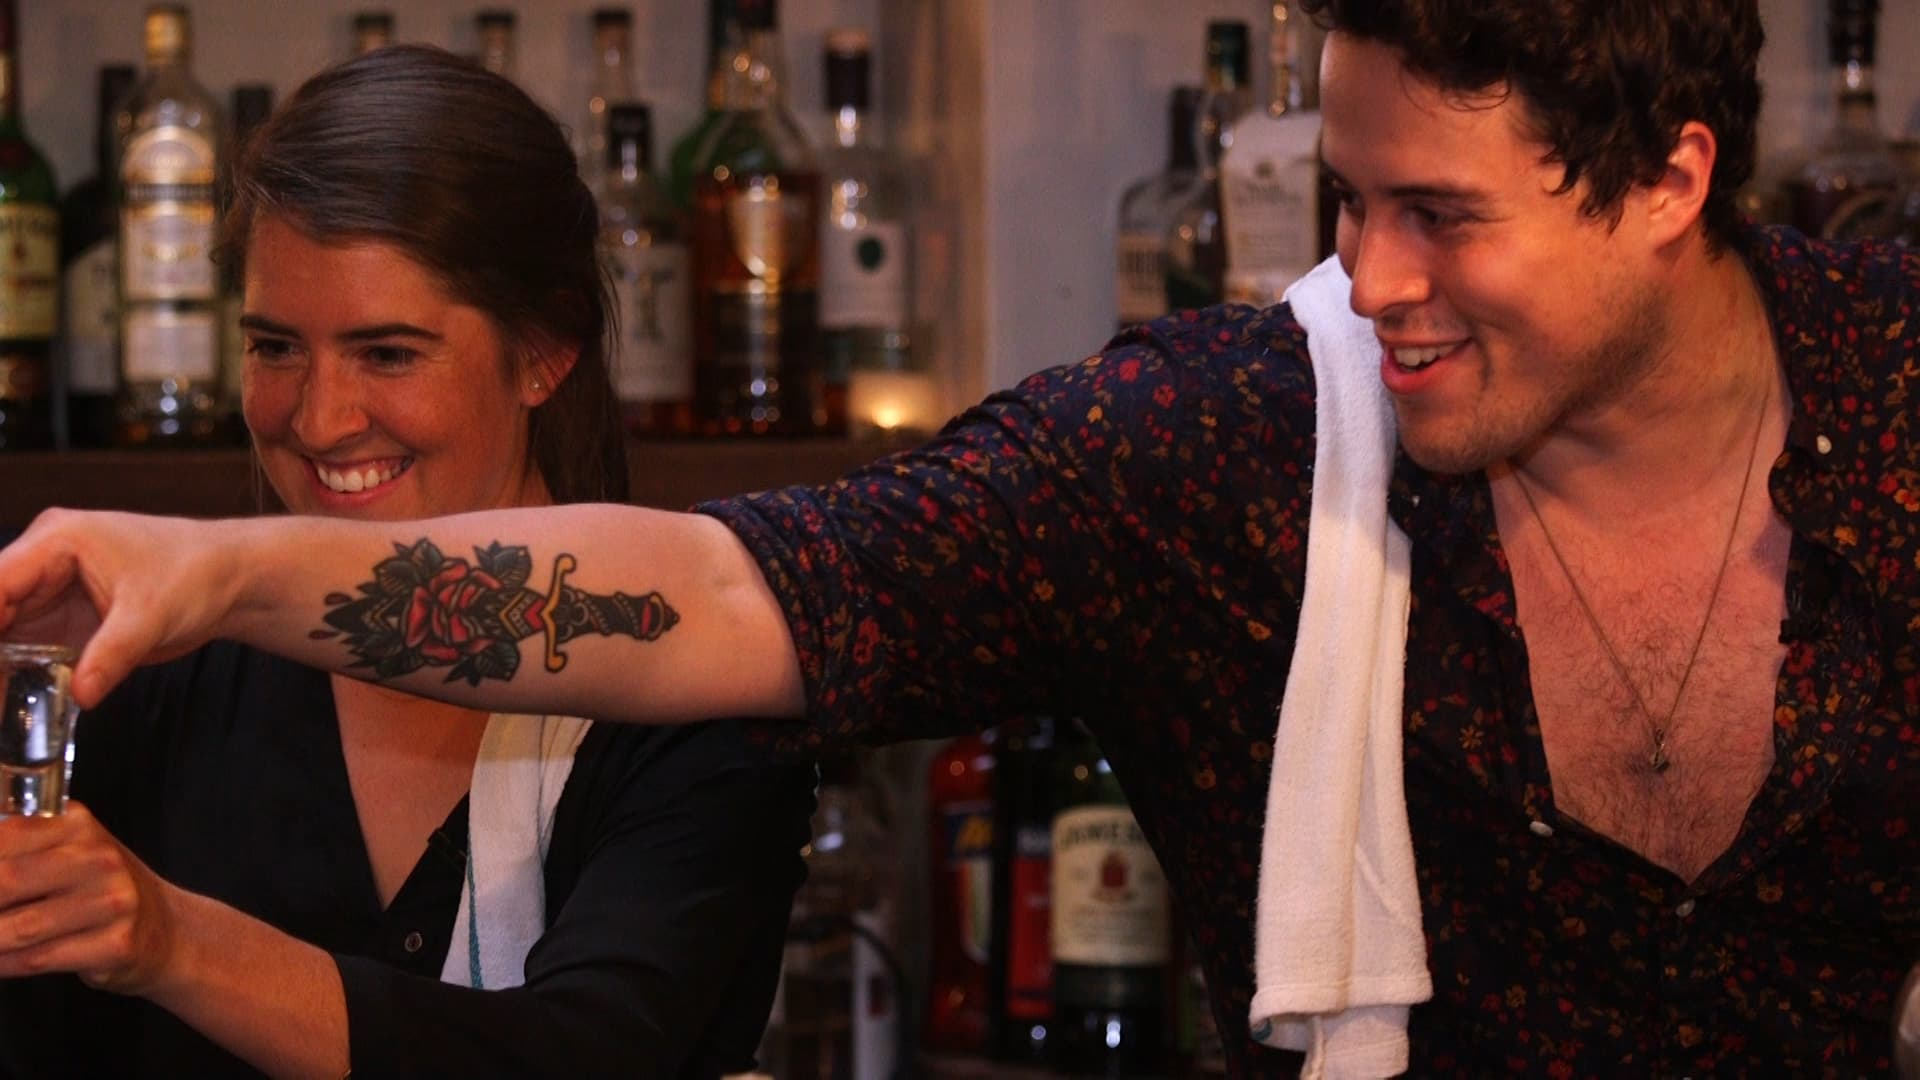 What it's like to be a bartender in NYC